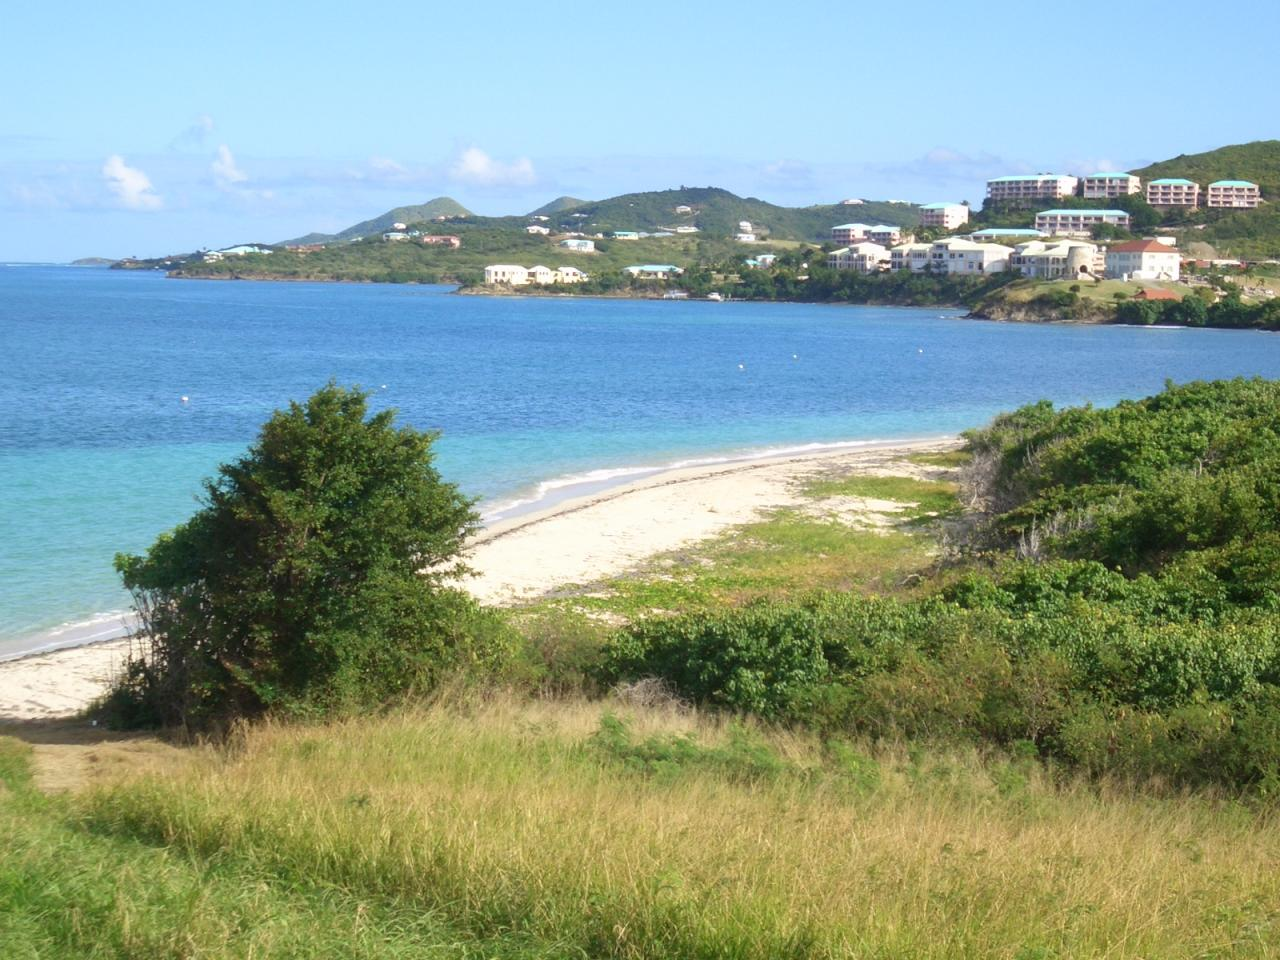 Additional photo for property listing at 1 & 13 Coakley Bay EB 1 & 13 Coakley Bay EB St Croix, Virgin Islands 00820 United States Virgin Islands